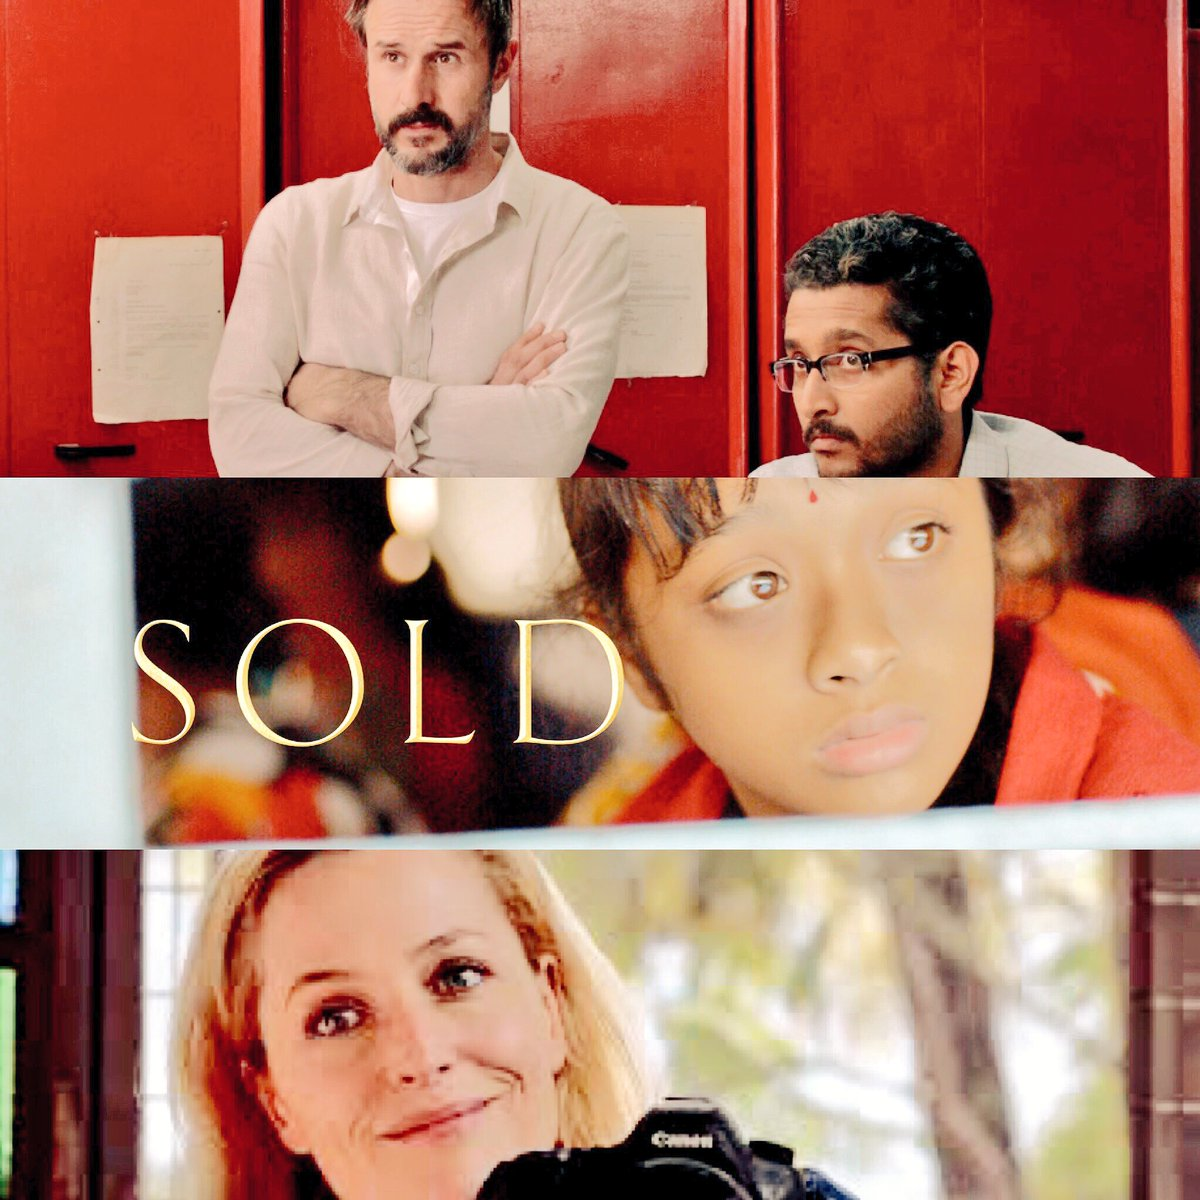 .@soldmovie is OUT now, let&#39;s #endtrafficking once and for all. #HumanTraffickingAwarenessDay  https:// itun.es/us/hotAgb  &nbsp;  <br>http://pic.twitter.com/LuLbtWtZEg